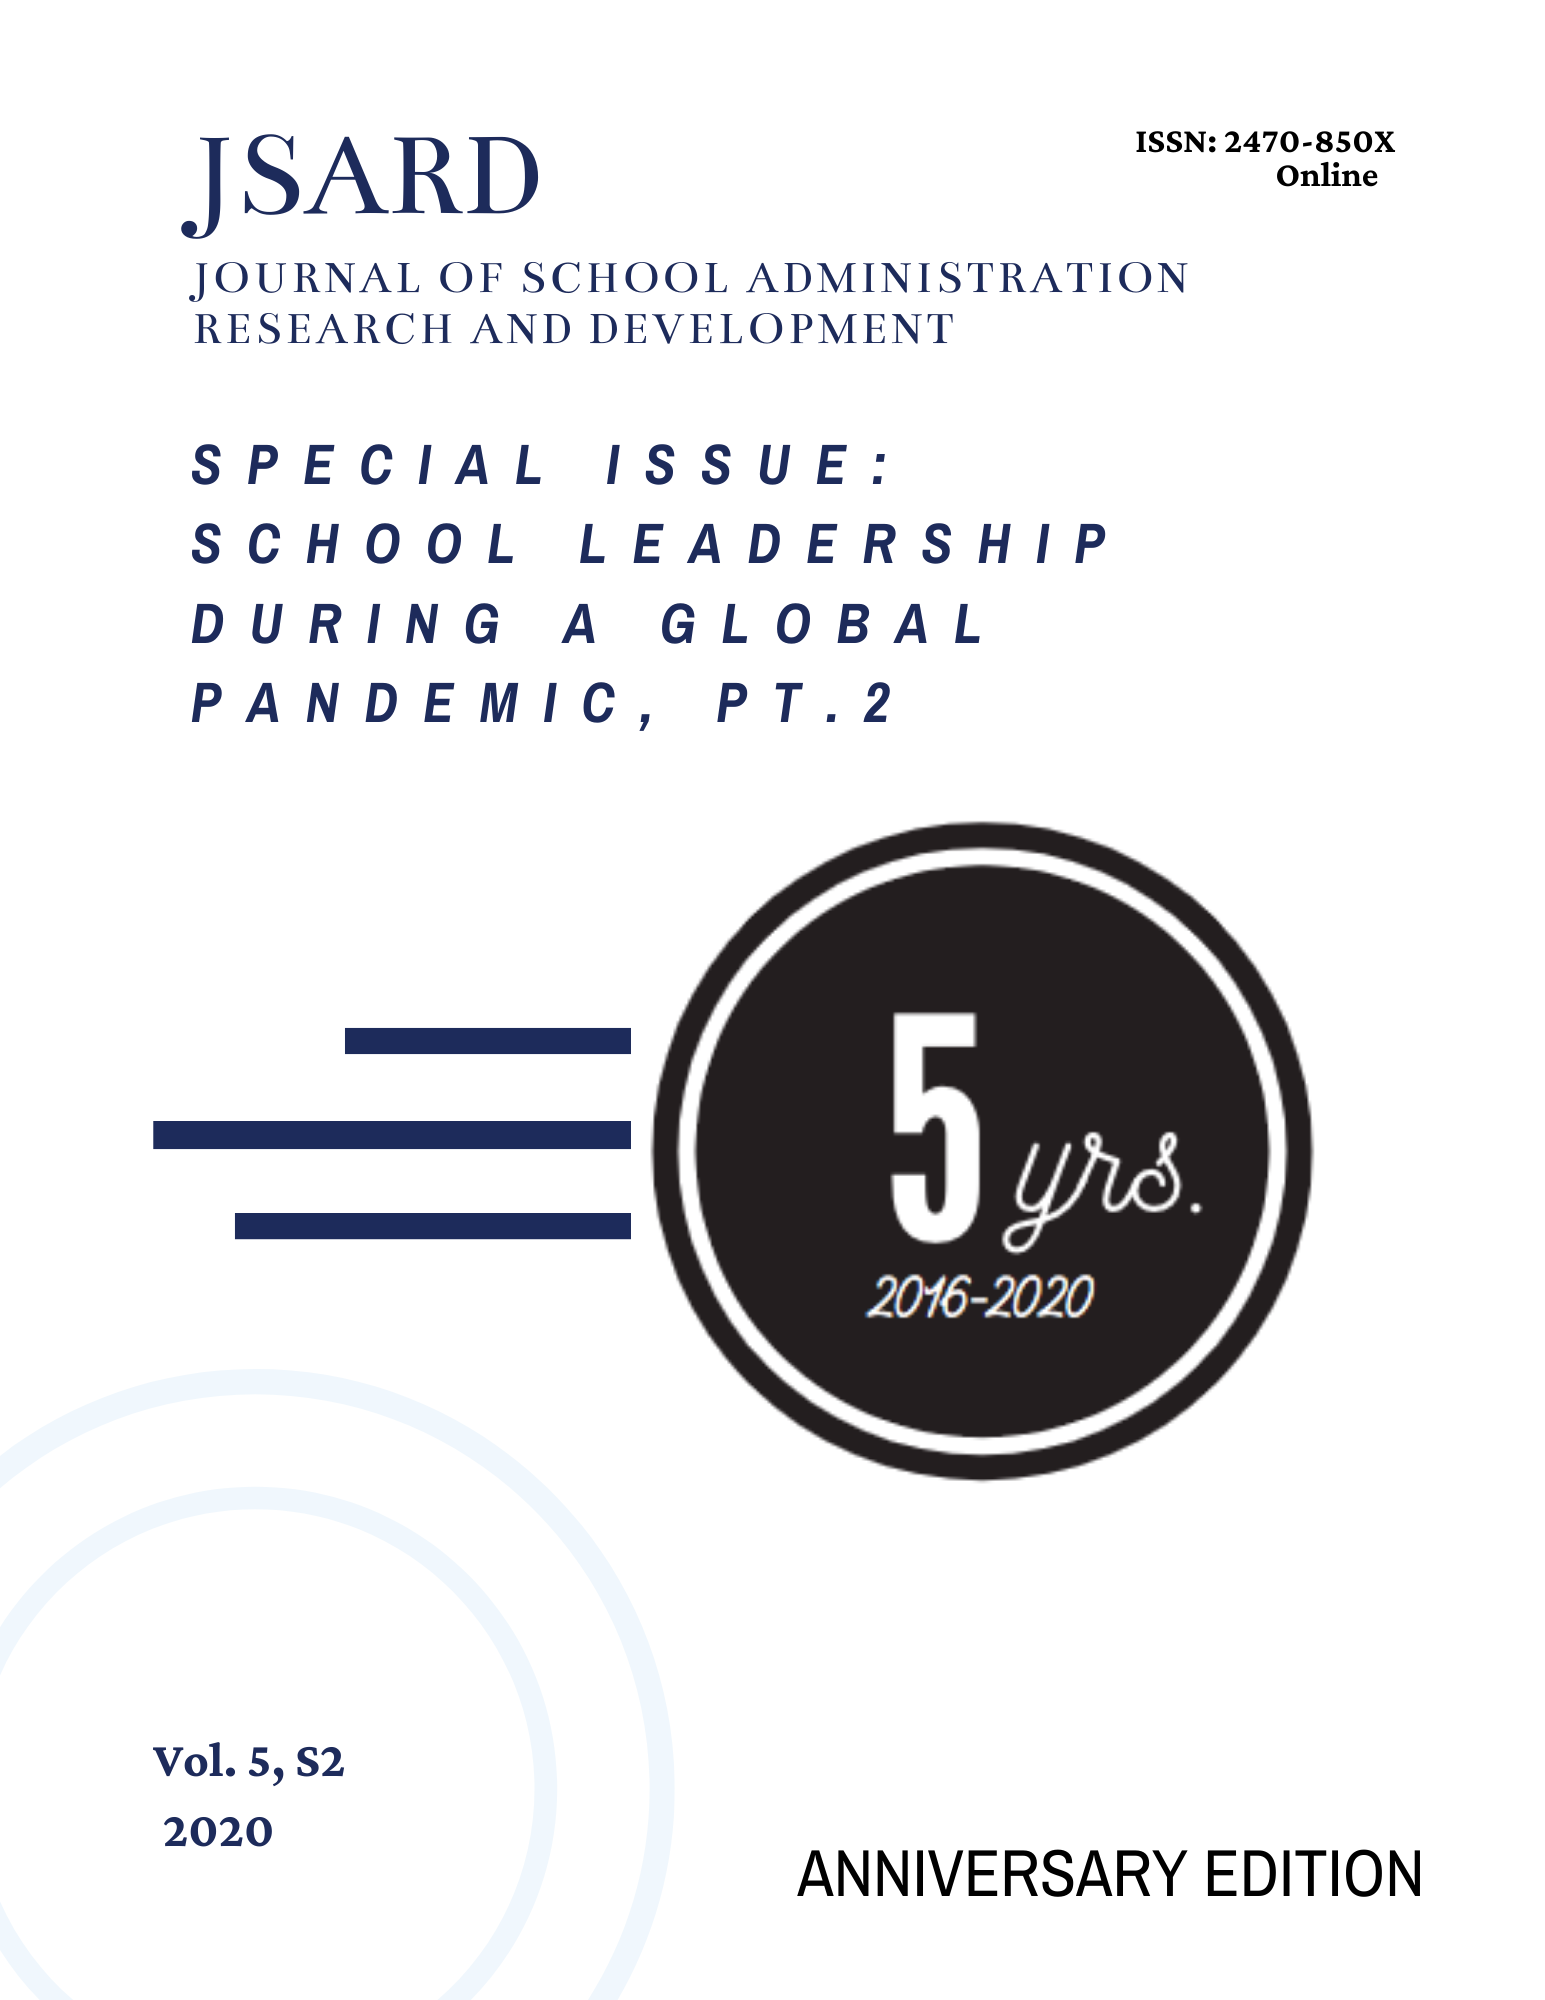 View Vol. 5 No. S2 (2020): 5th Anniversary Special Issue: School Leadership During a Global Pandemic, pt. 2